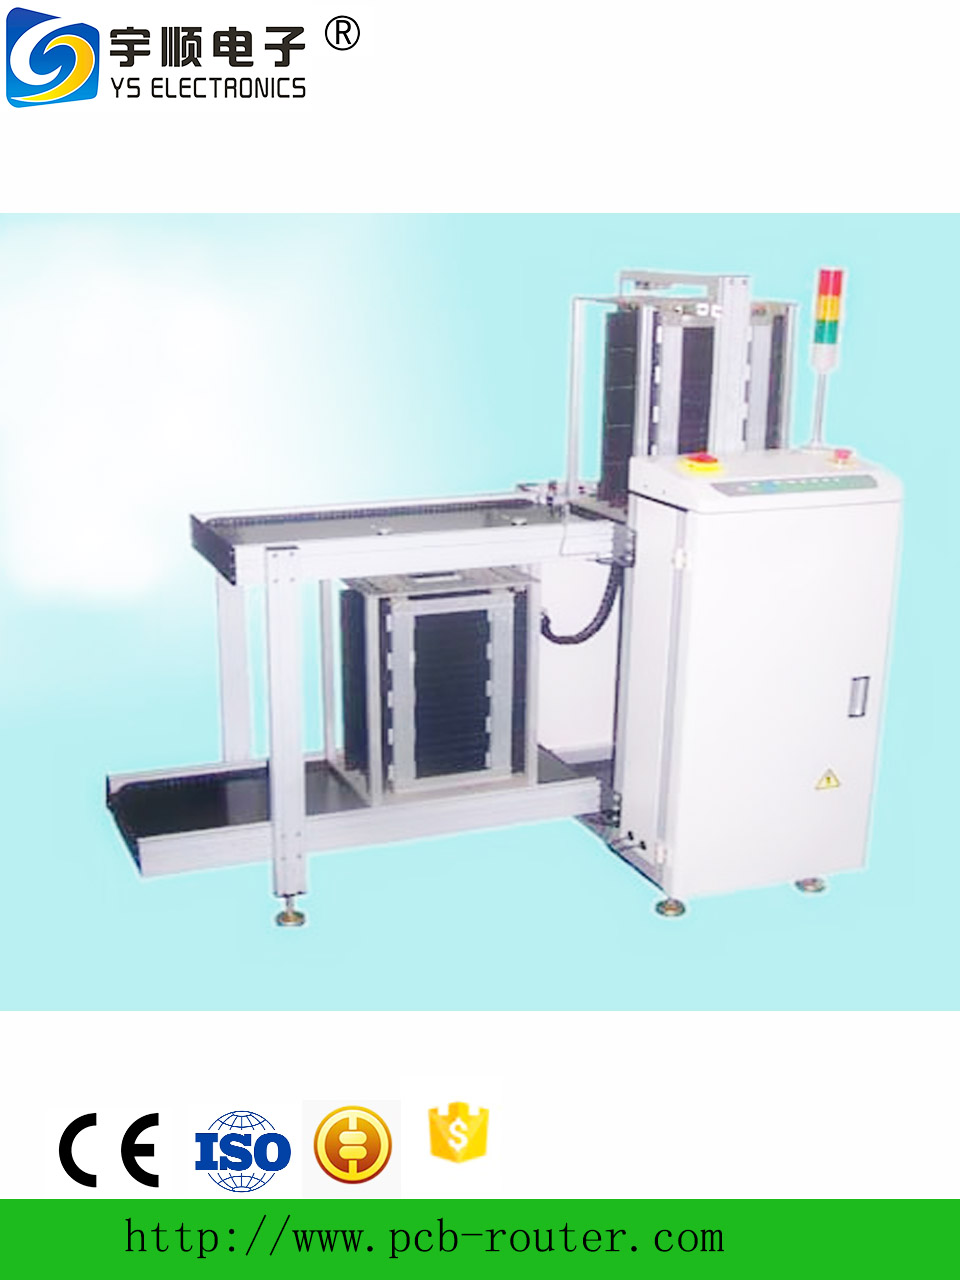 Hot selling automatic PCB loader machine/Factory price SMT automation PCB loader equipment